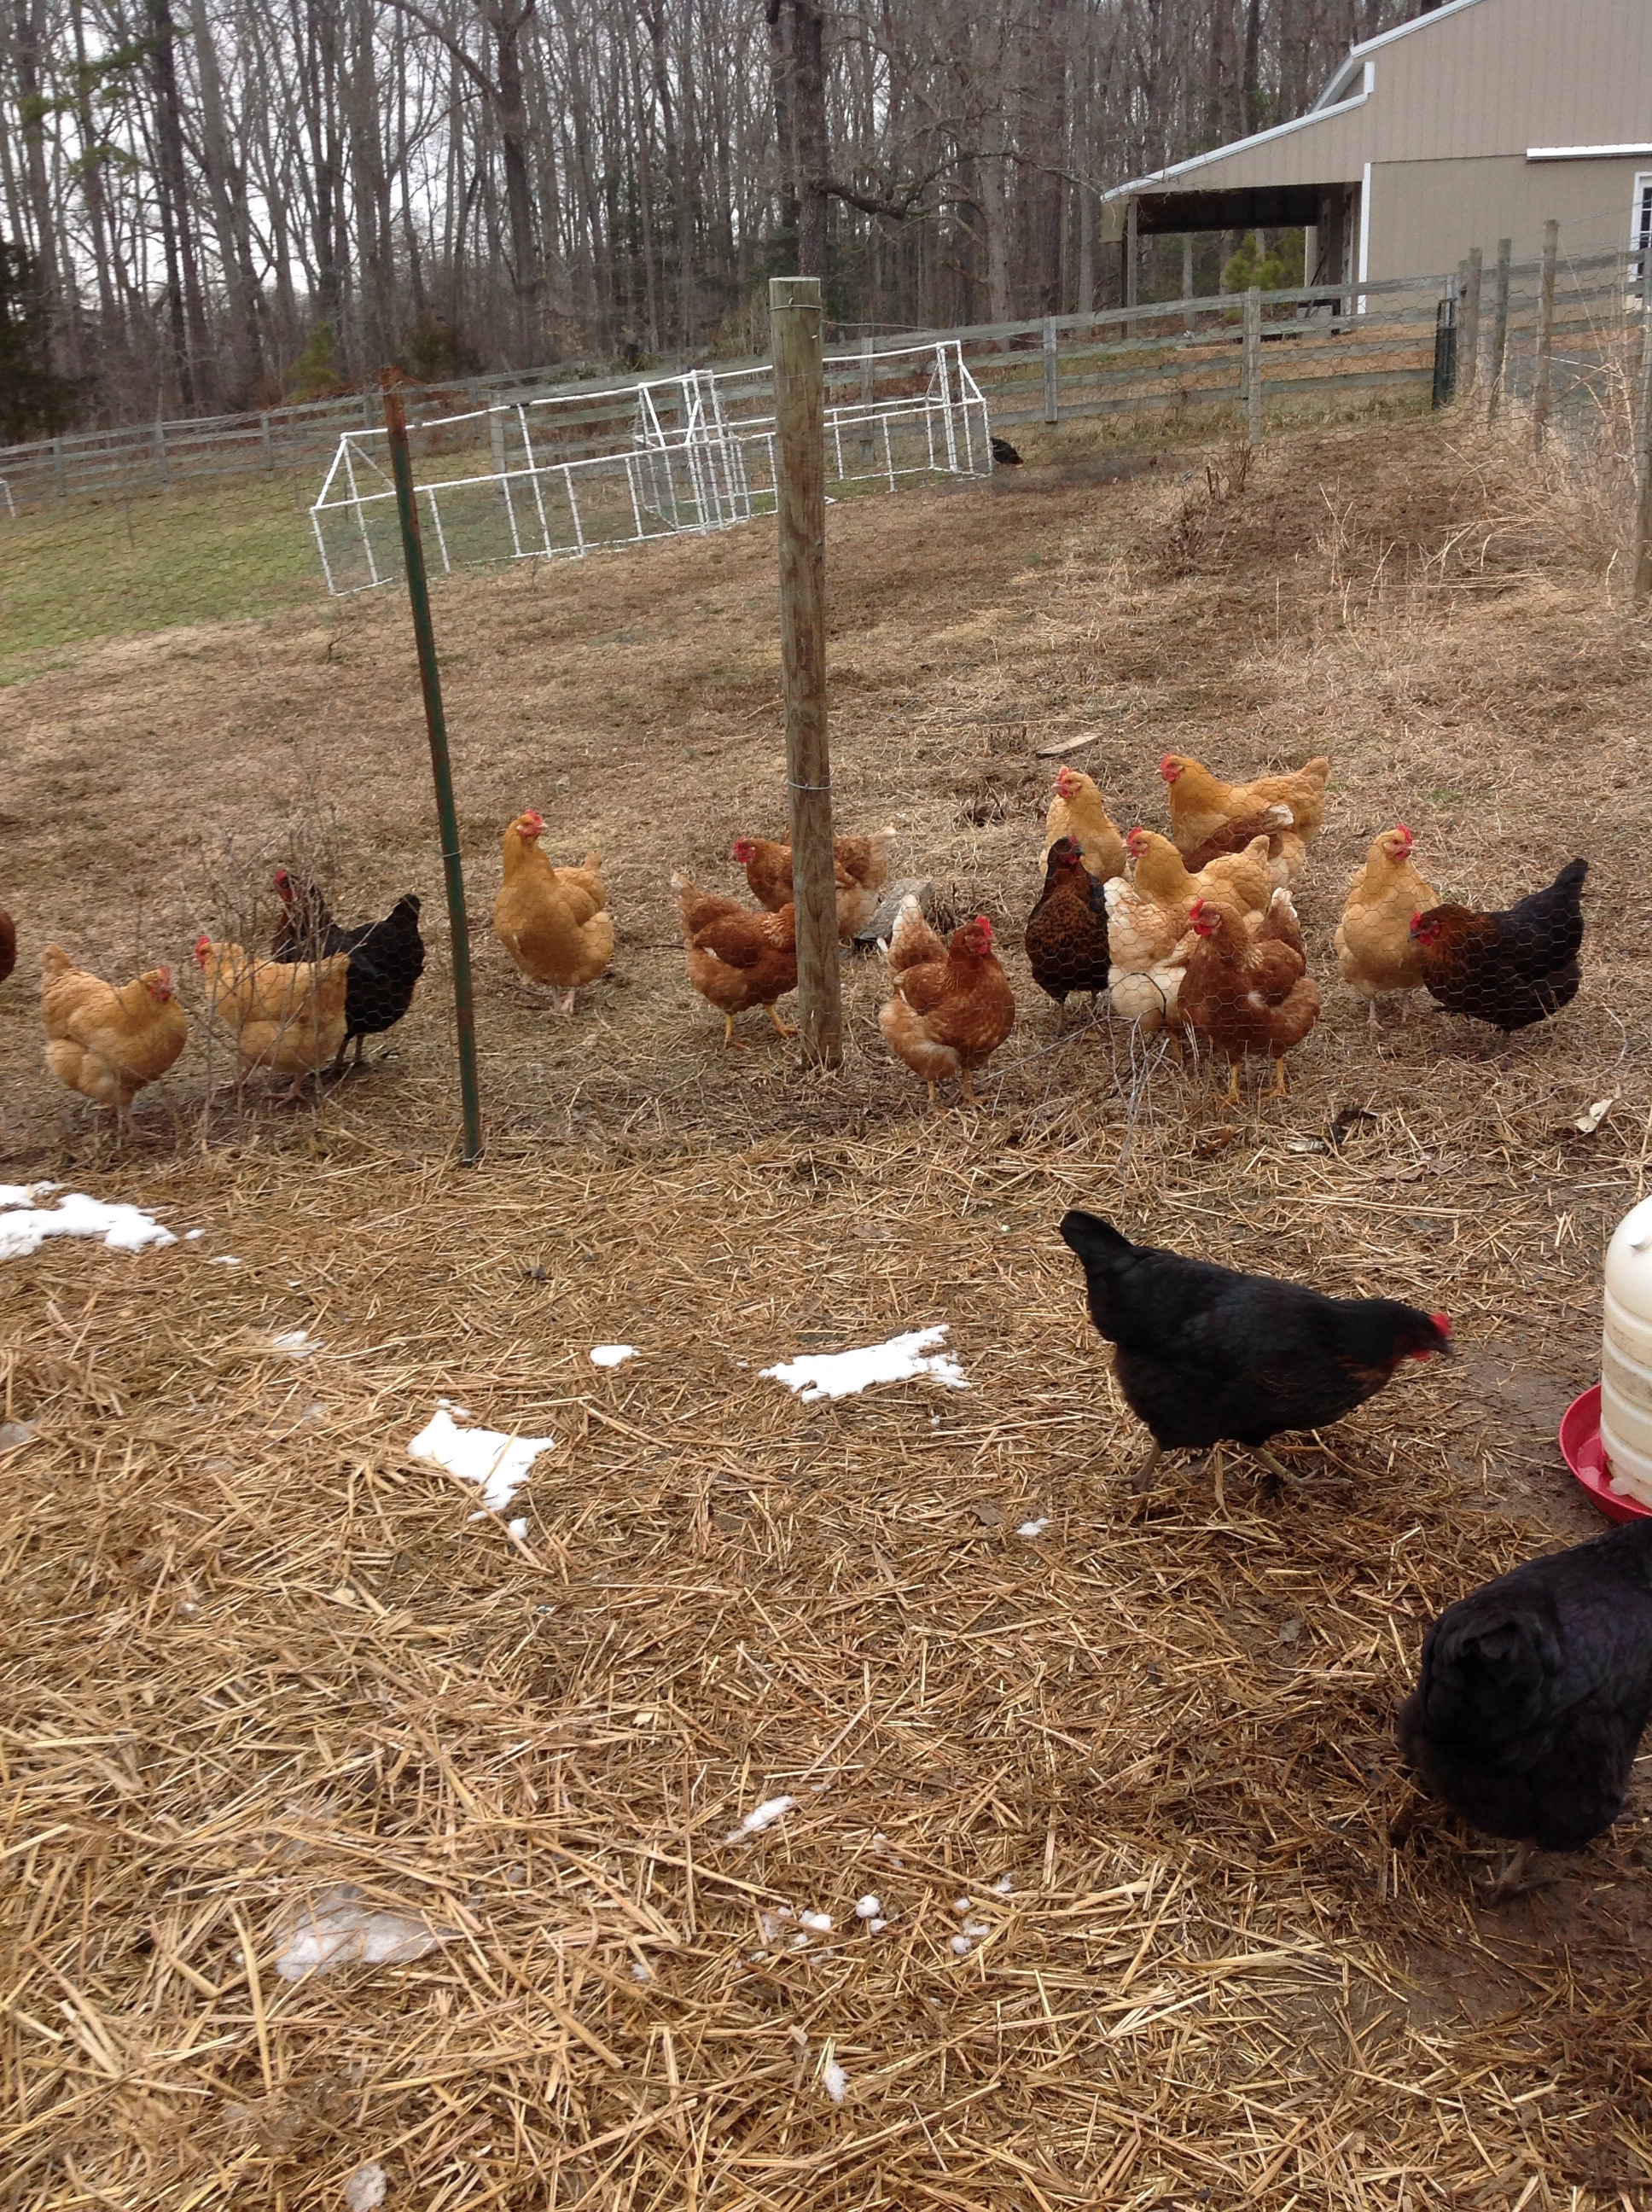 New chickens for fresh eggs